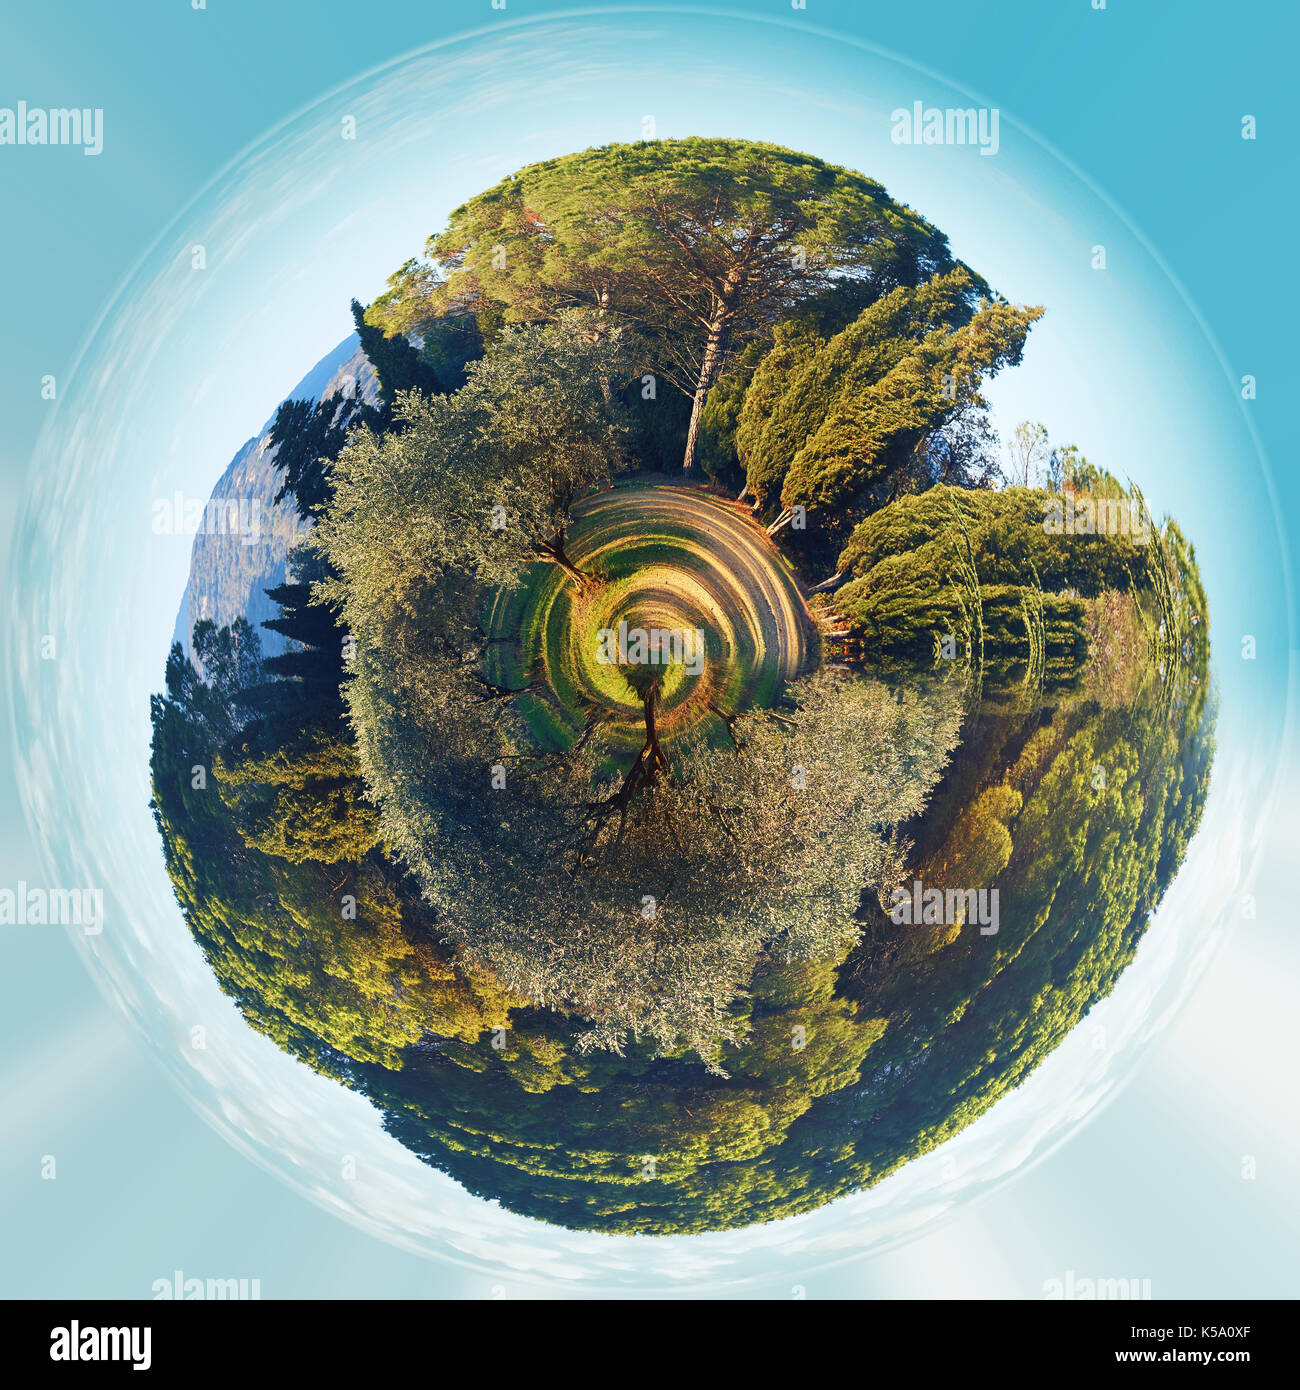 Little planet 360 degree sphere. Panorama of Lourmarin park. Provence-Alpes-Cote d'Azur. France - Stock Image